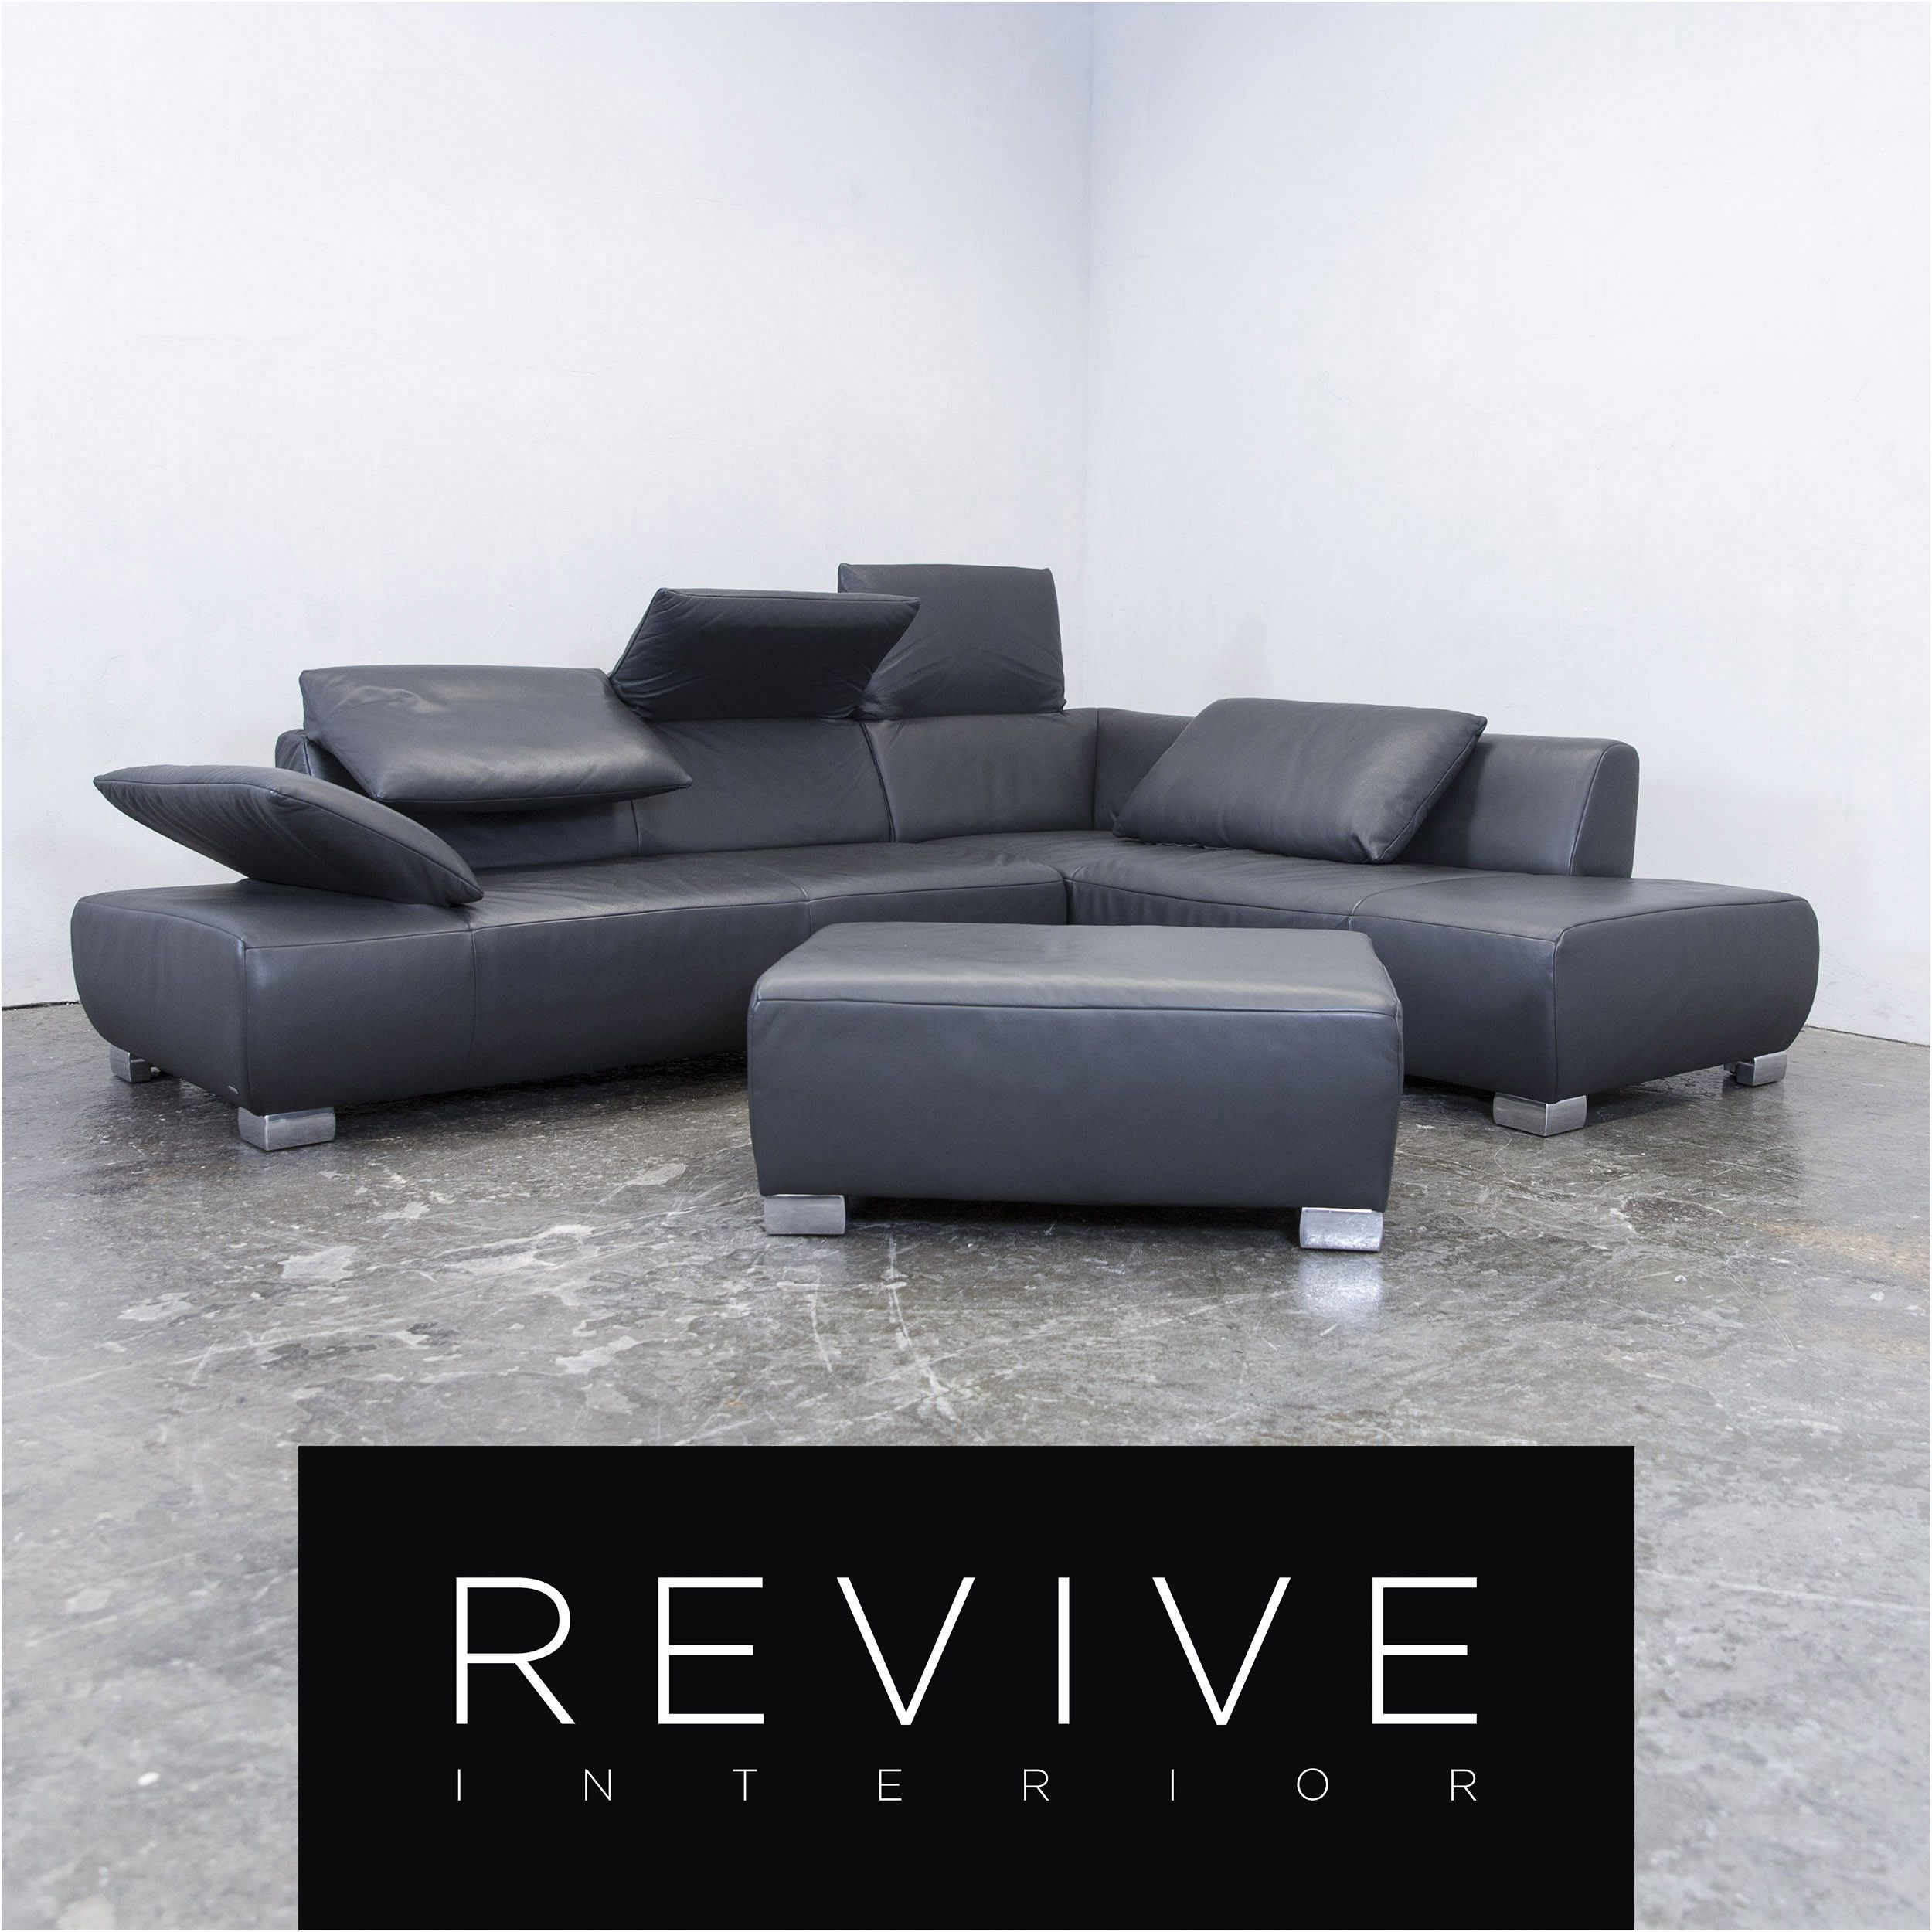 Sofa Grau Schwarz Sofaberwurf Ecksofa Great Other In This Post With In 2020 Couch Sofa Decor